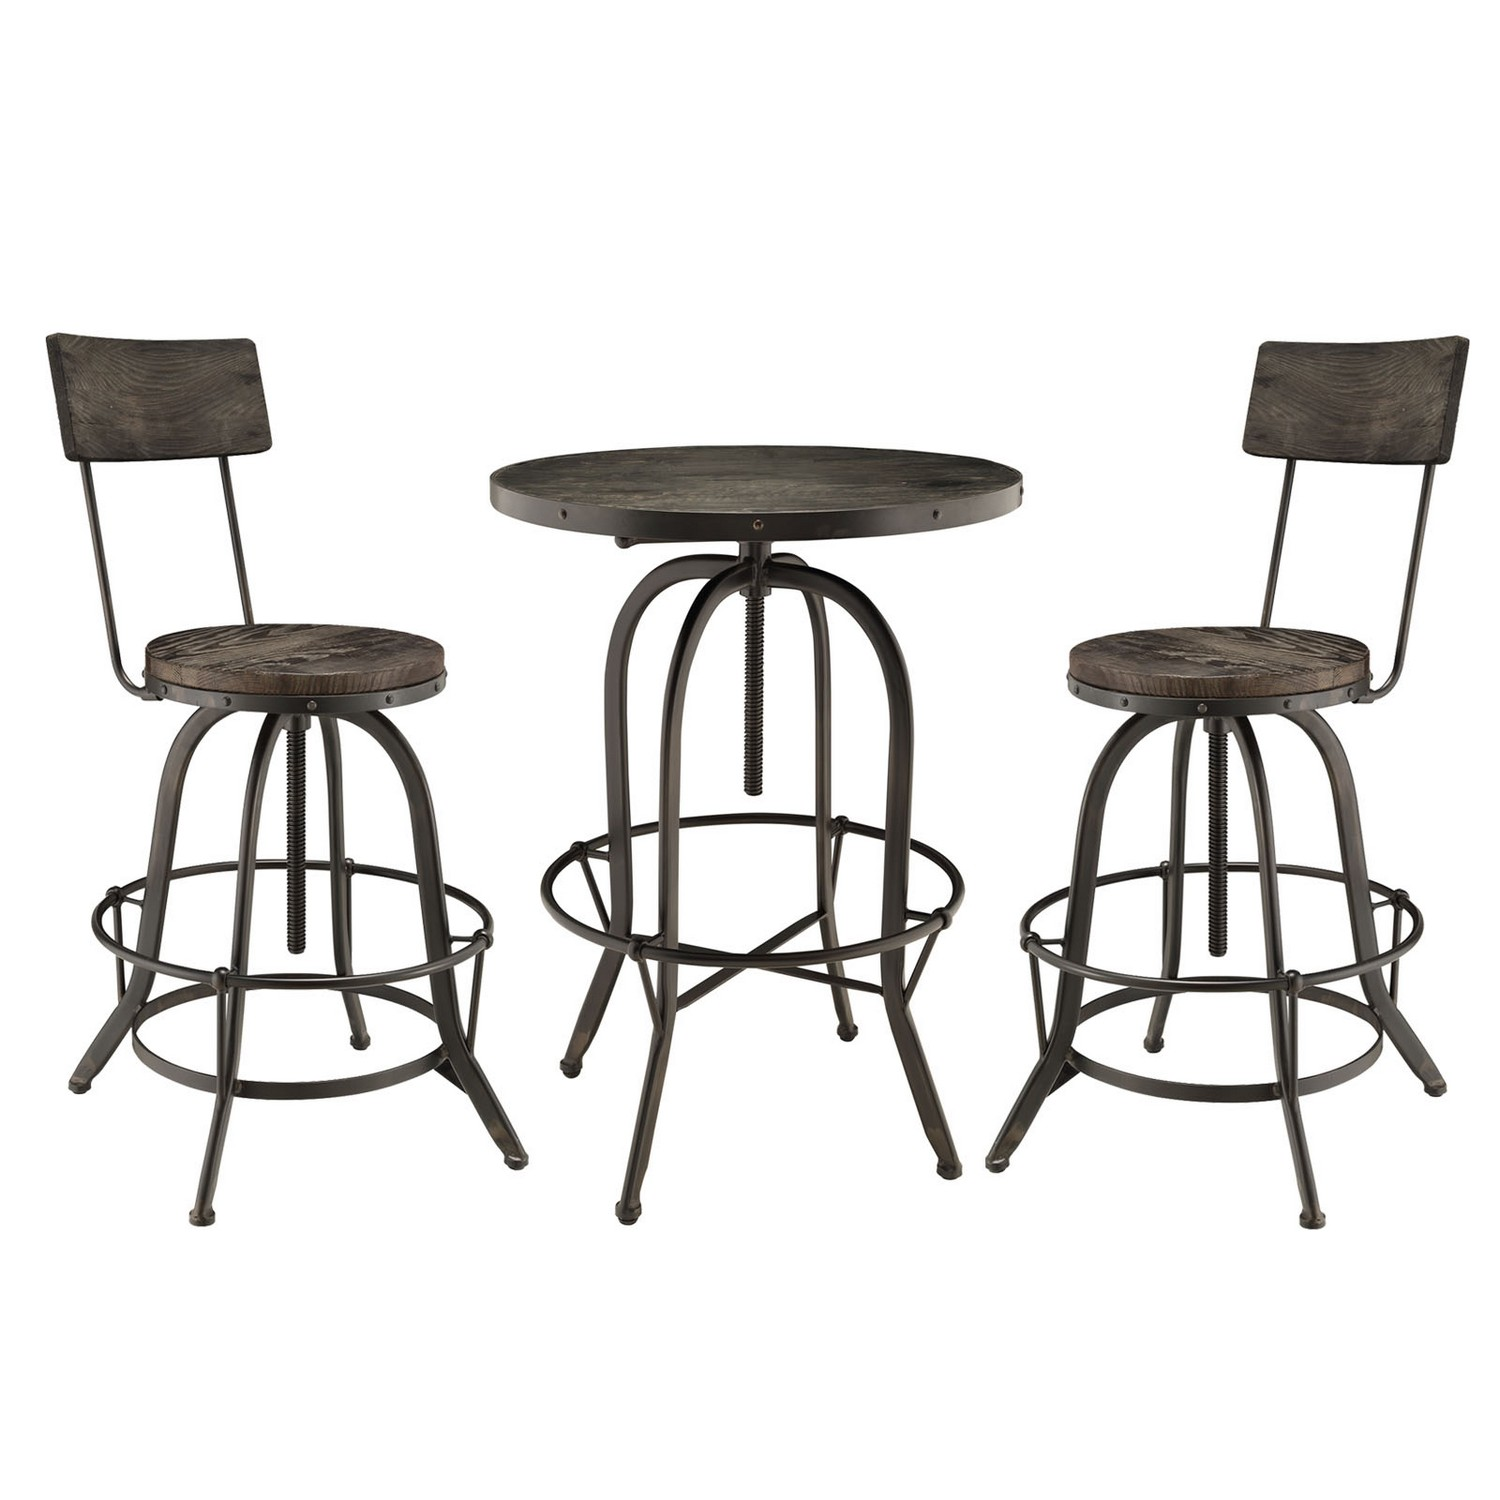 Modway Gather 5 Piece Dining Set with Bar Stool - Black